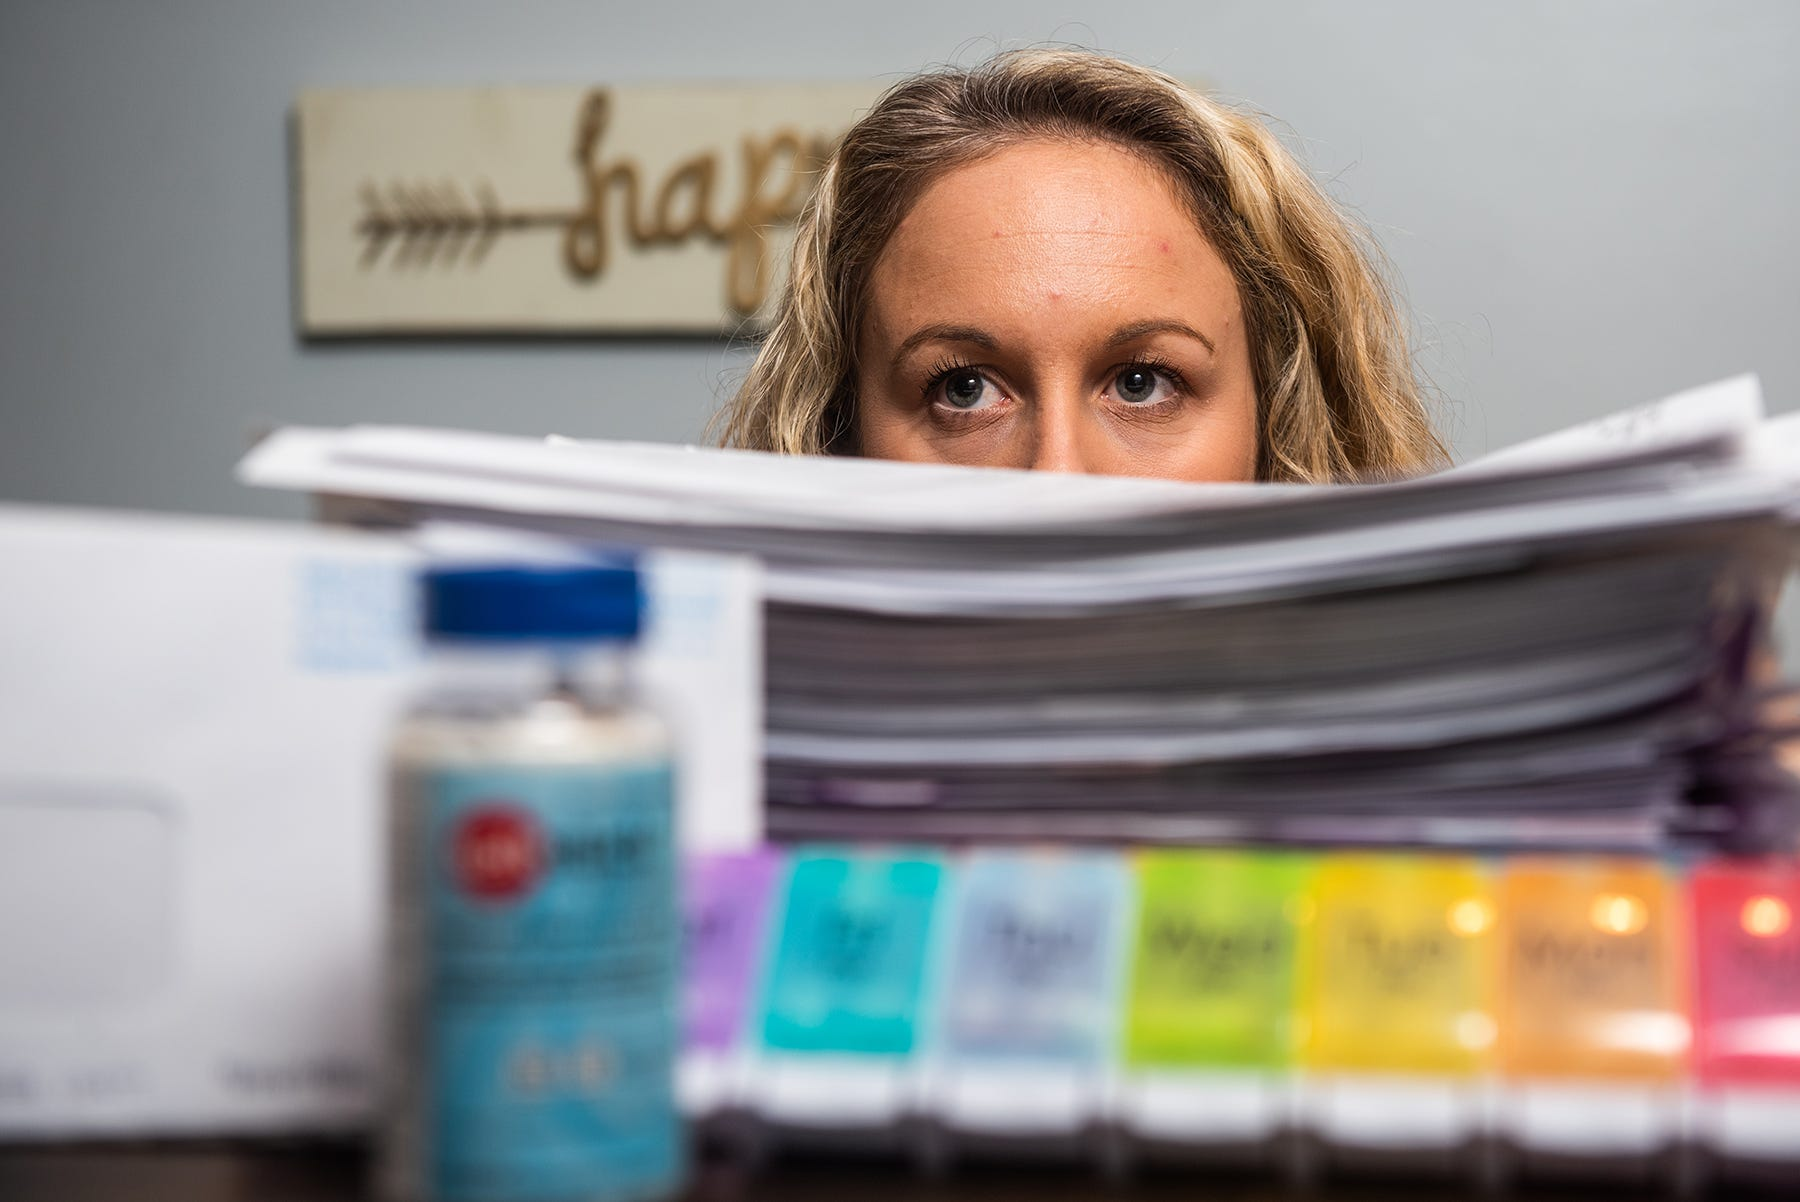 Caitlin Barber peeks over the stack of paperwork that she has amassed since her COVID-19 diagnoses in 2019 as she sits for a portrait at her home in Saugerties, NY on Wednesday, July 28, 2021. Barber caught COVID-19 while working at a nursing home in 2019, she's now fighting for workers compensation. Kelly Marsh/For the Times Herald-Record